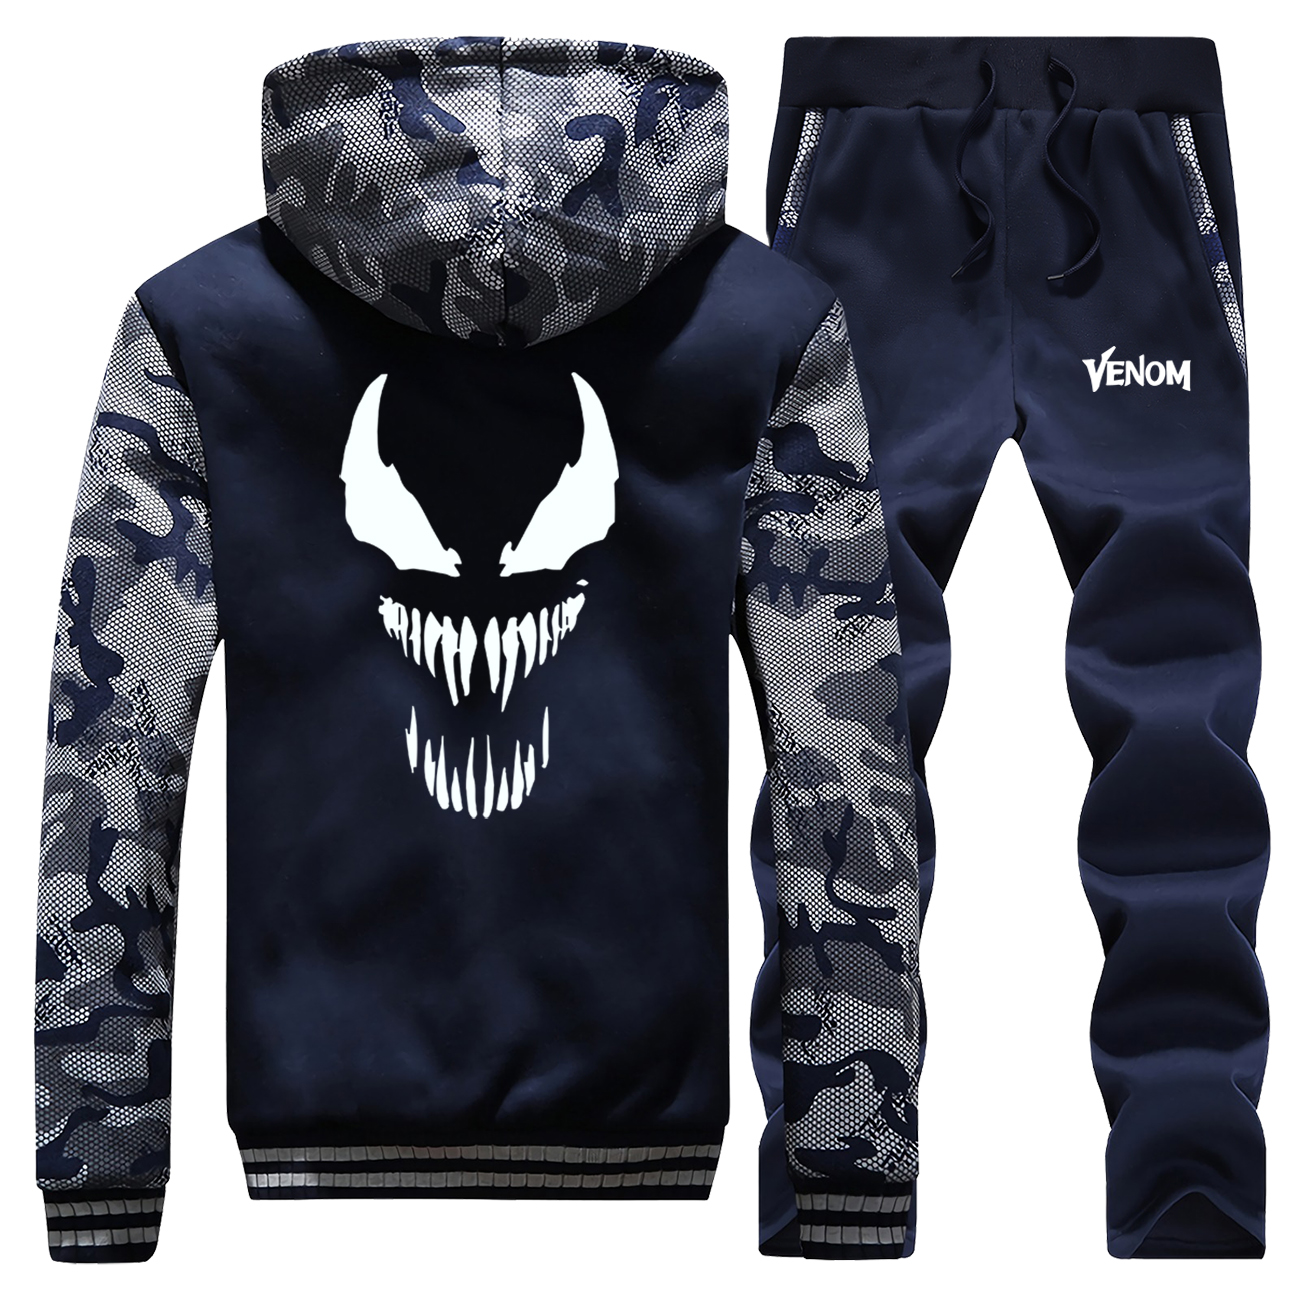 Marvel Men Trend Tracksuit Set Fashion Venom Print Sportswear Two Piece Sets Cotton Fleece Thick Hoodie+Pants Sporting Man Suit